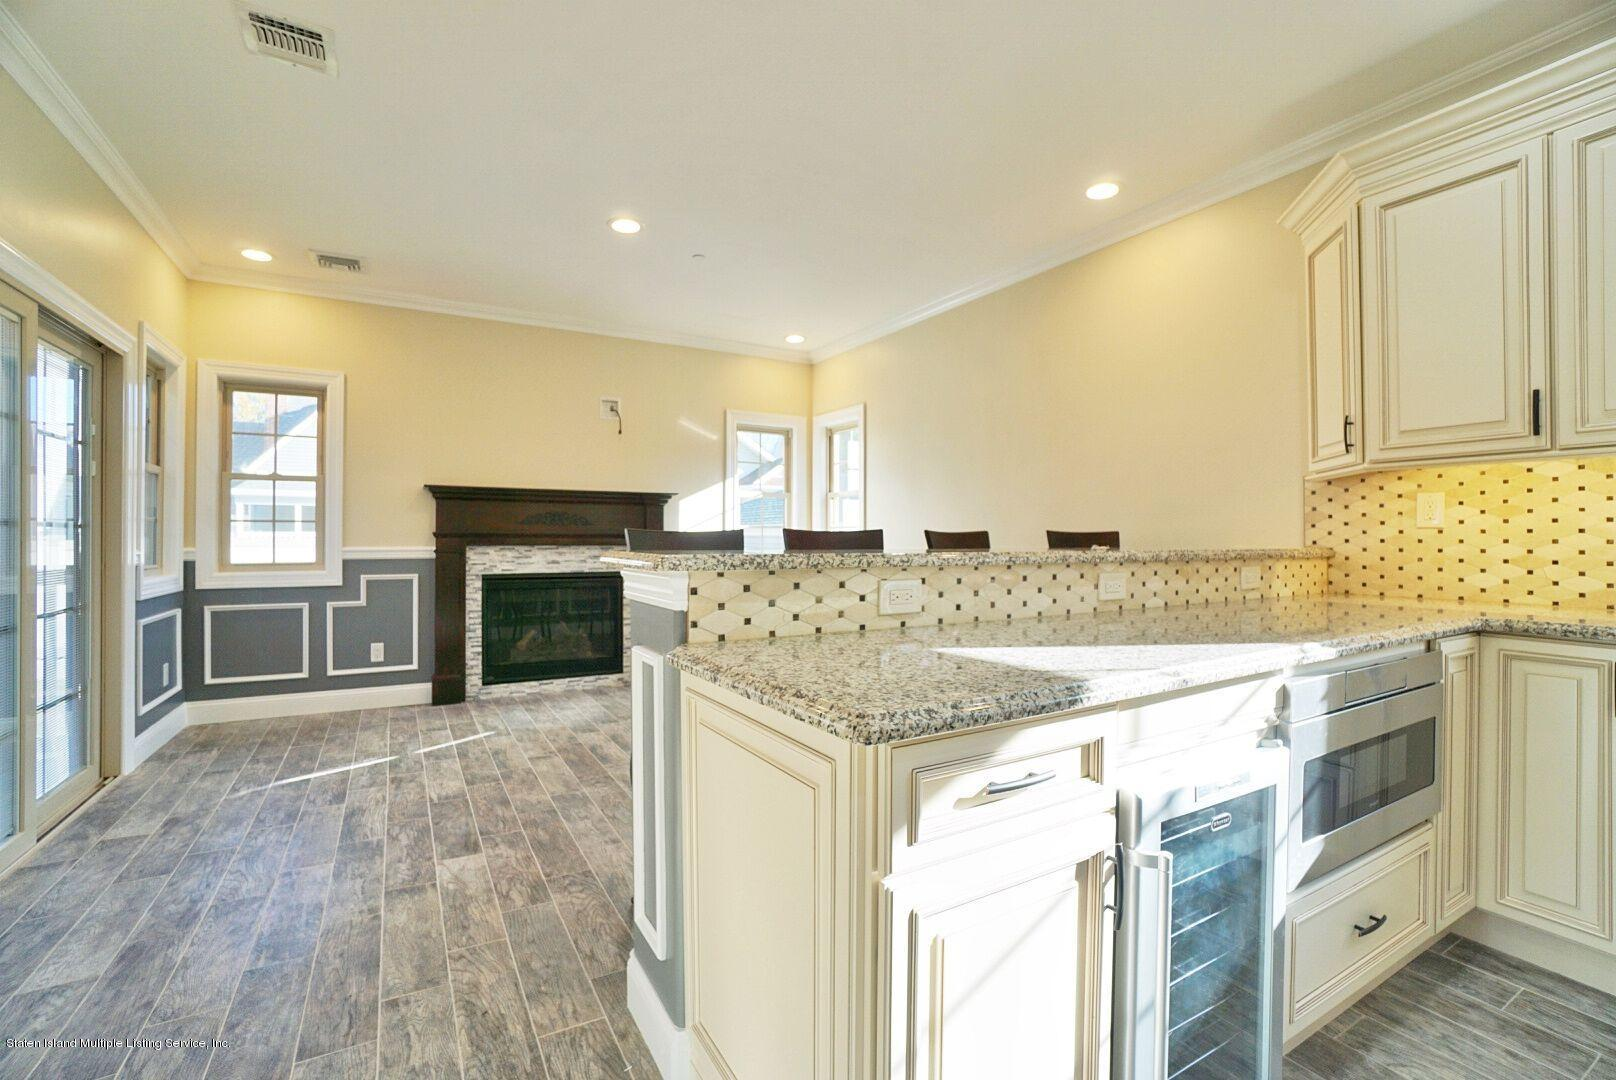 Single Family - Detached 165 Woolley Avenue  Staten Island, NY 10314, MLS-1128875-28